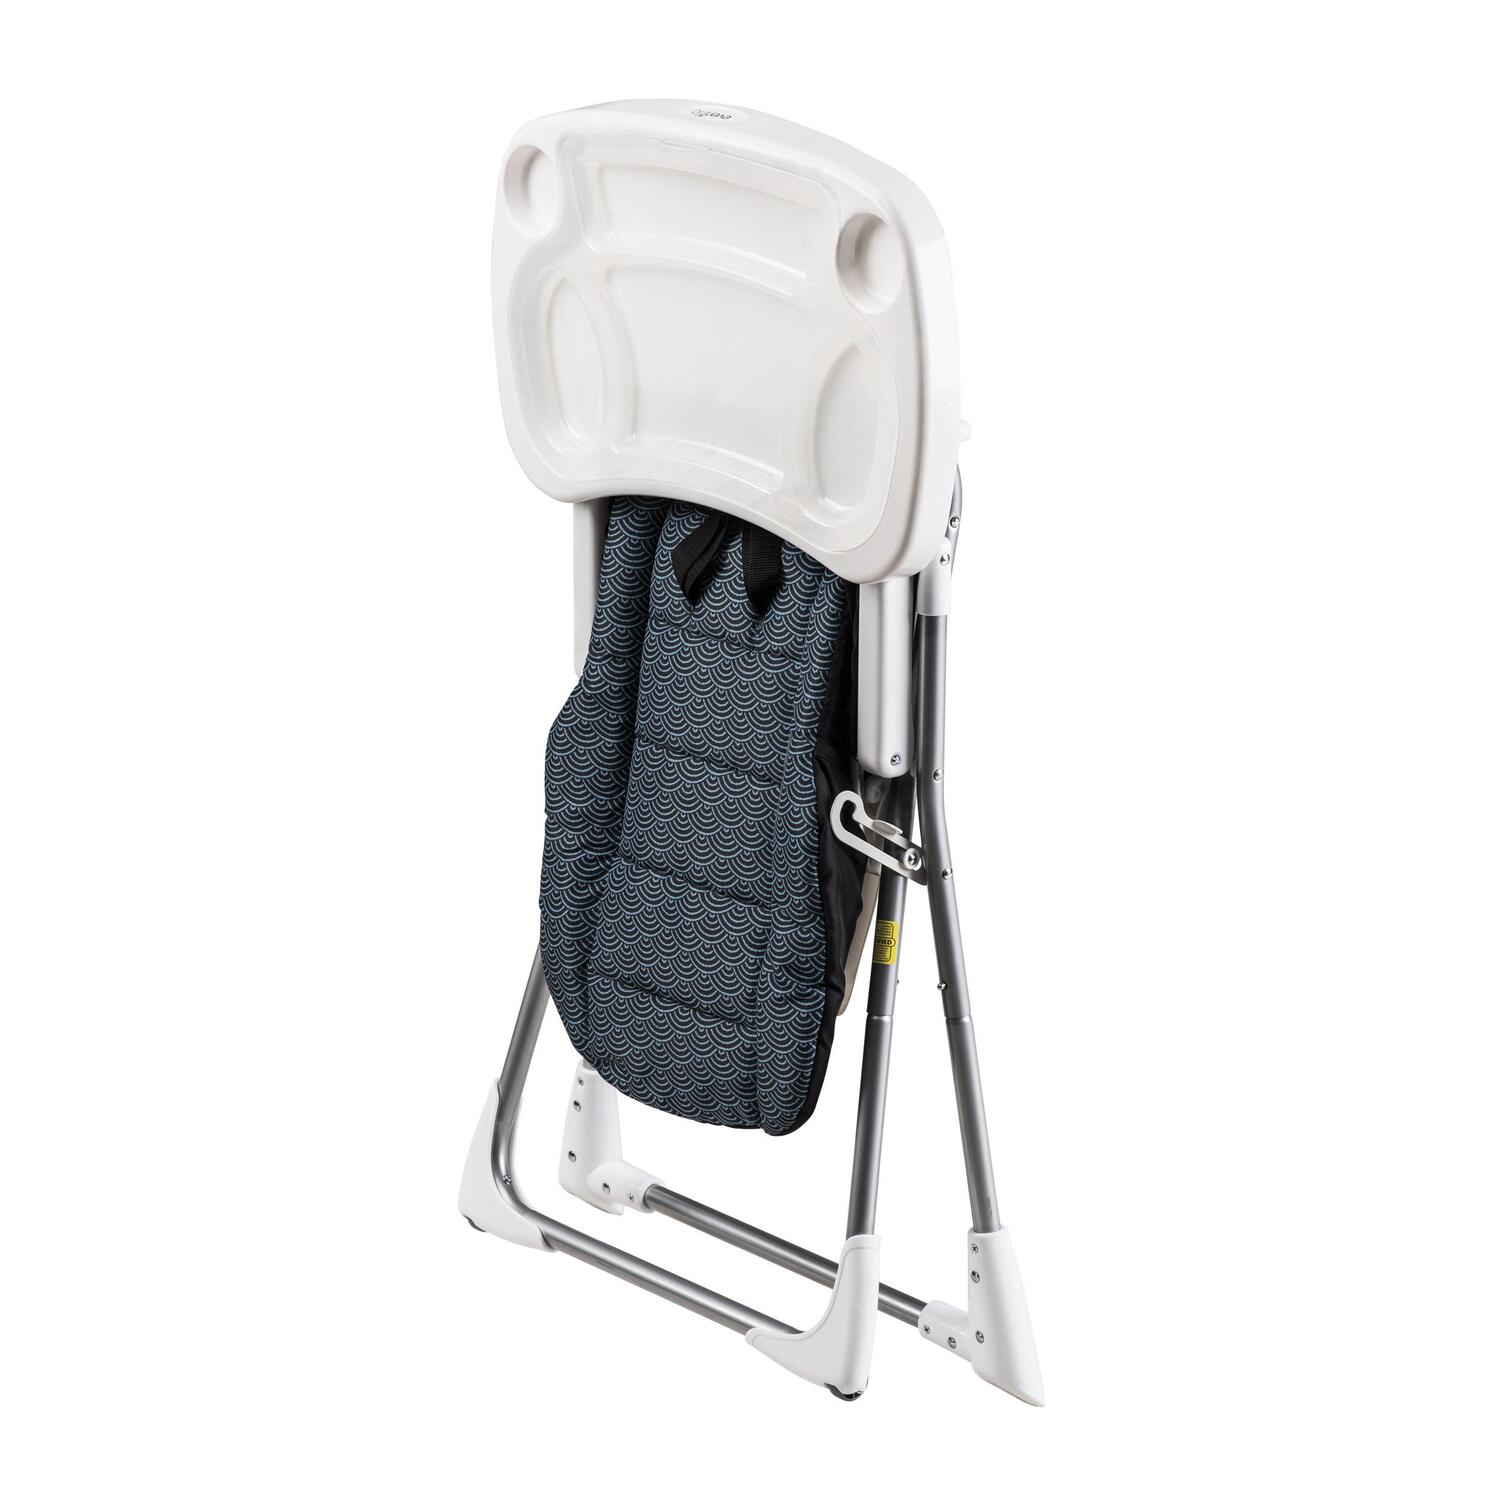 evenflo compact high chair hanging lawn fold by oj commerce 55 99